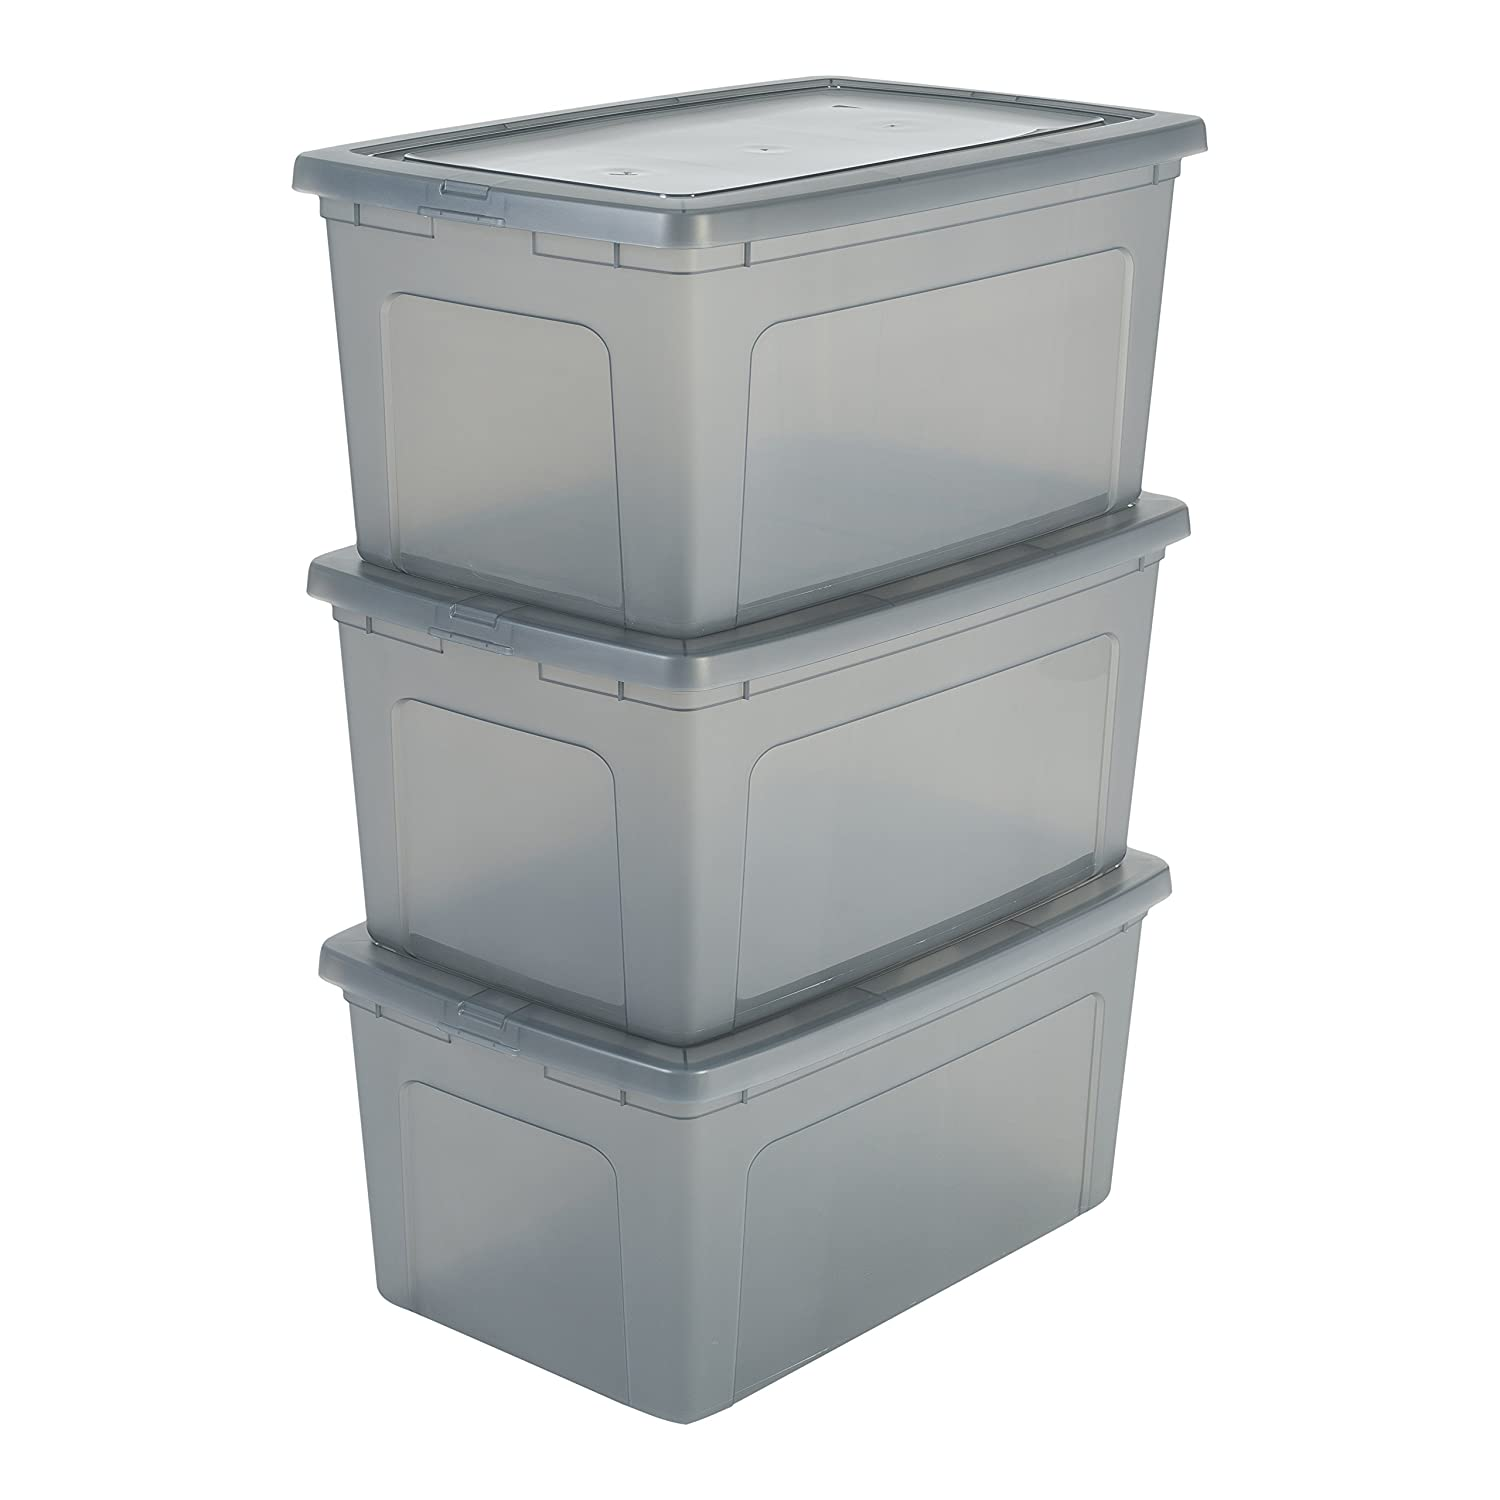 Rollcontainer kunststoff ikea  Büro-Rollcontainer | Amazon.de